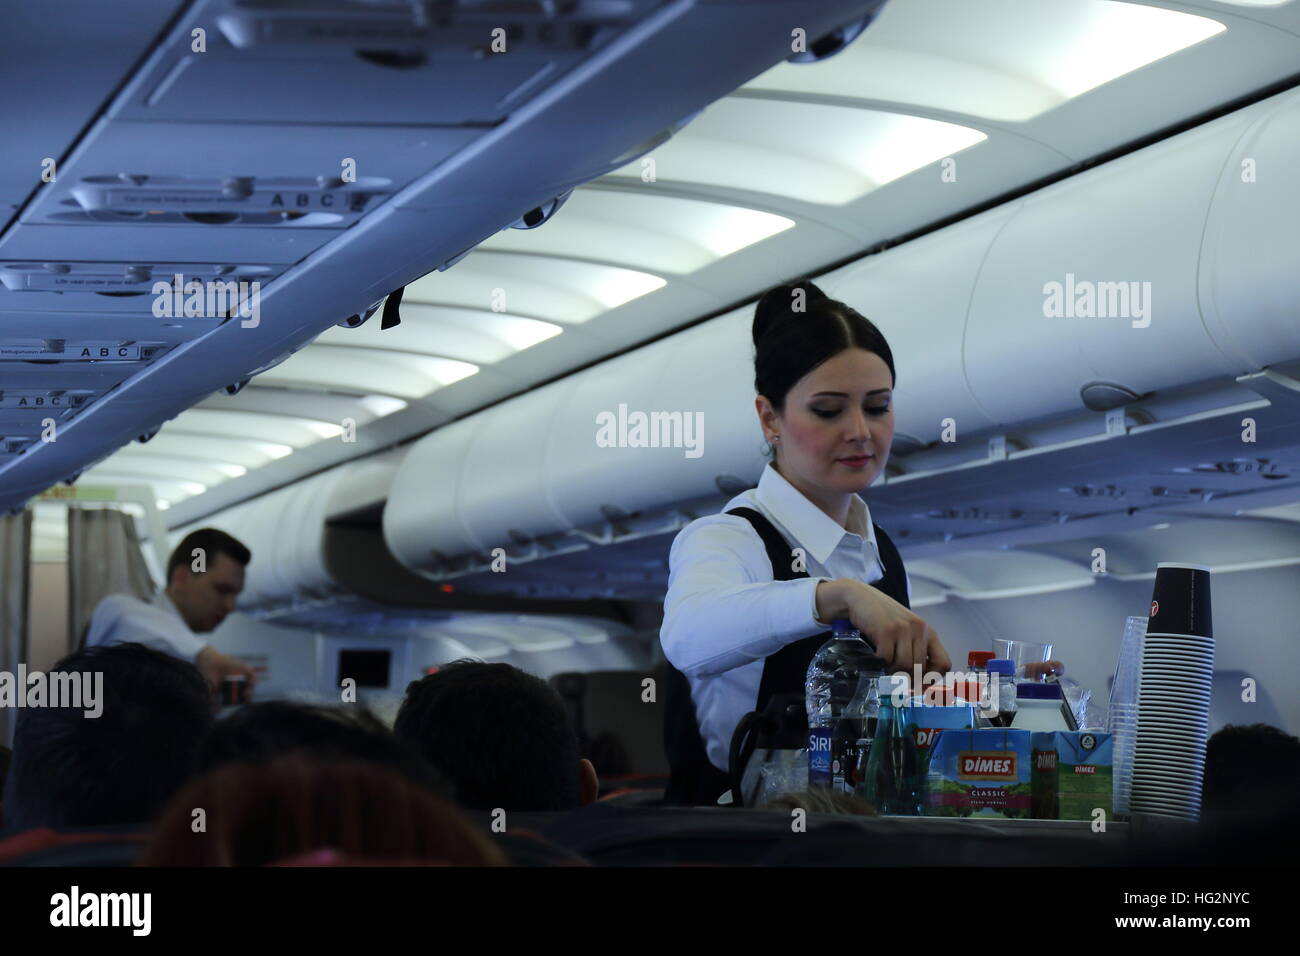 Cabin crew on passenger aircraft attending to passengers needs image in landscape format - Stock Image